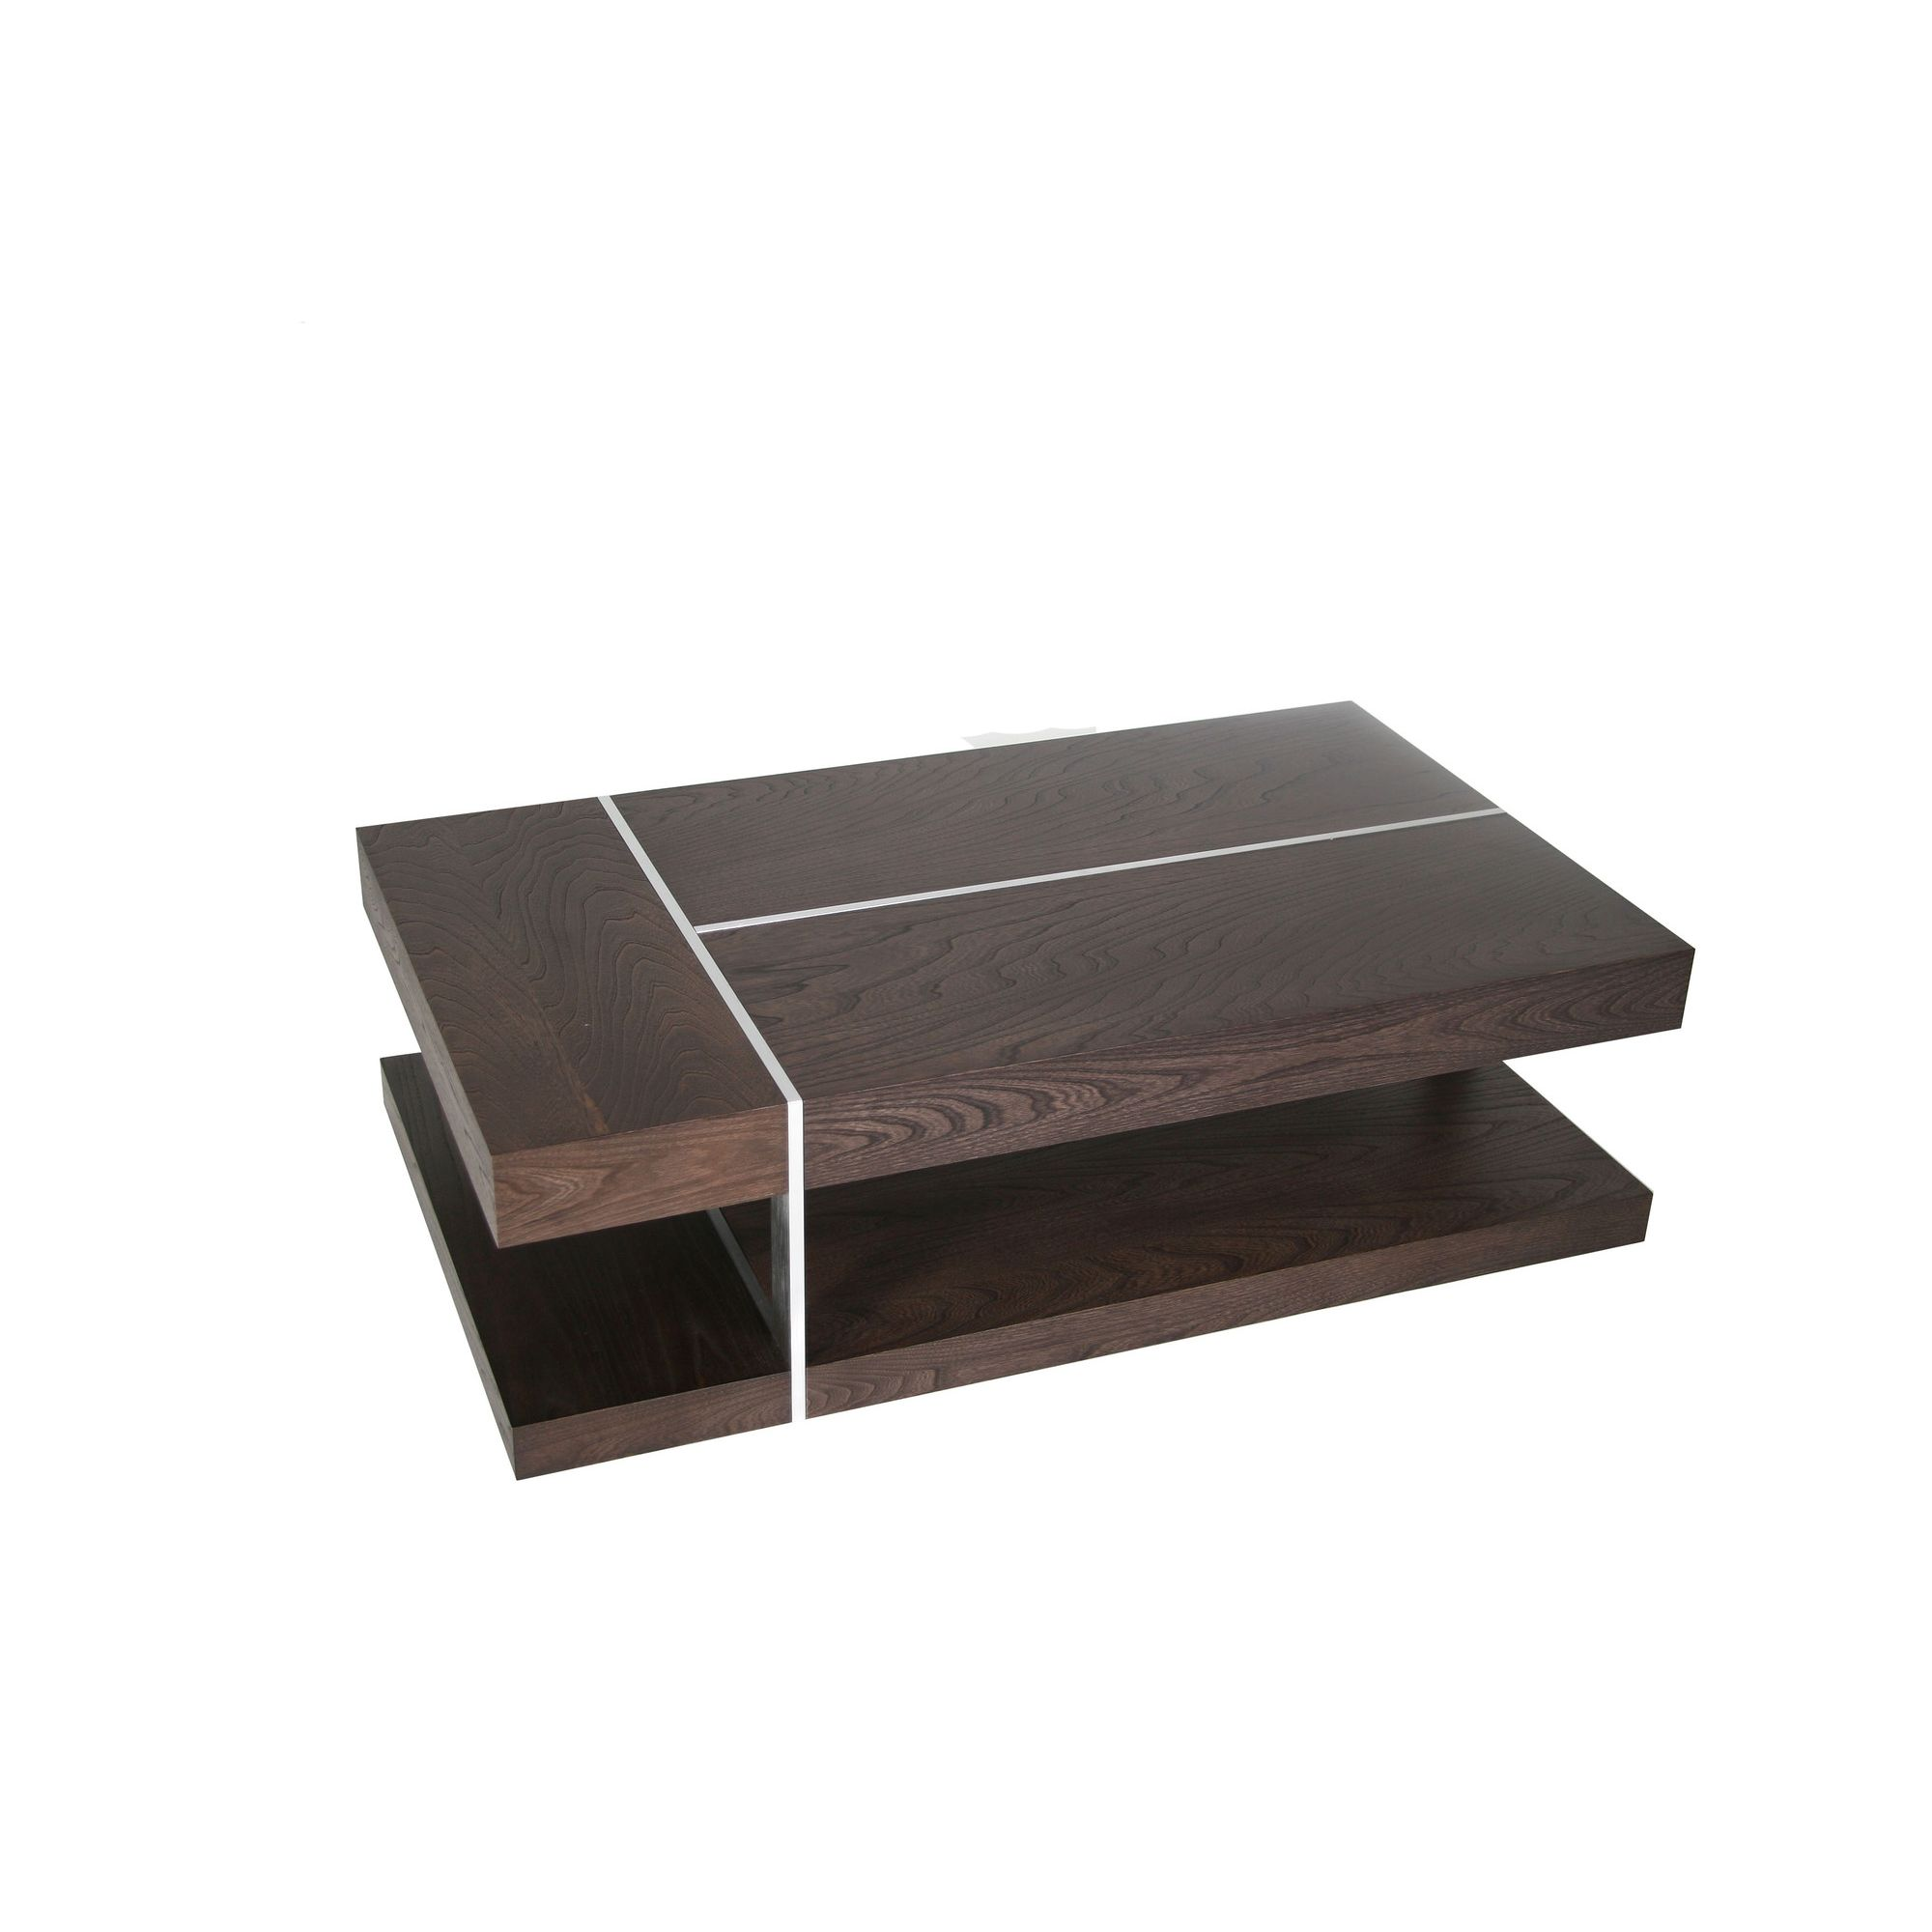 Solway Furniture Austin Coffee Table at Tesco Direct